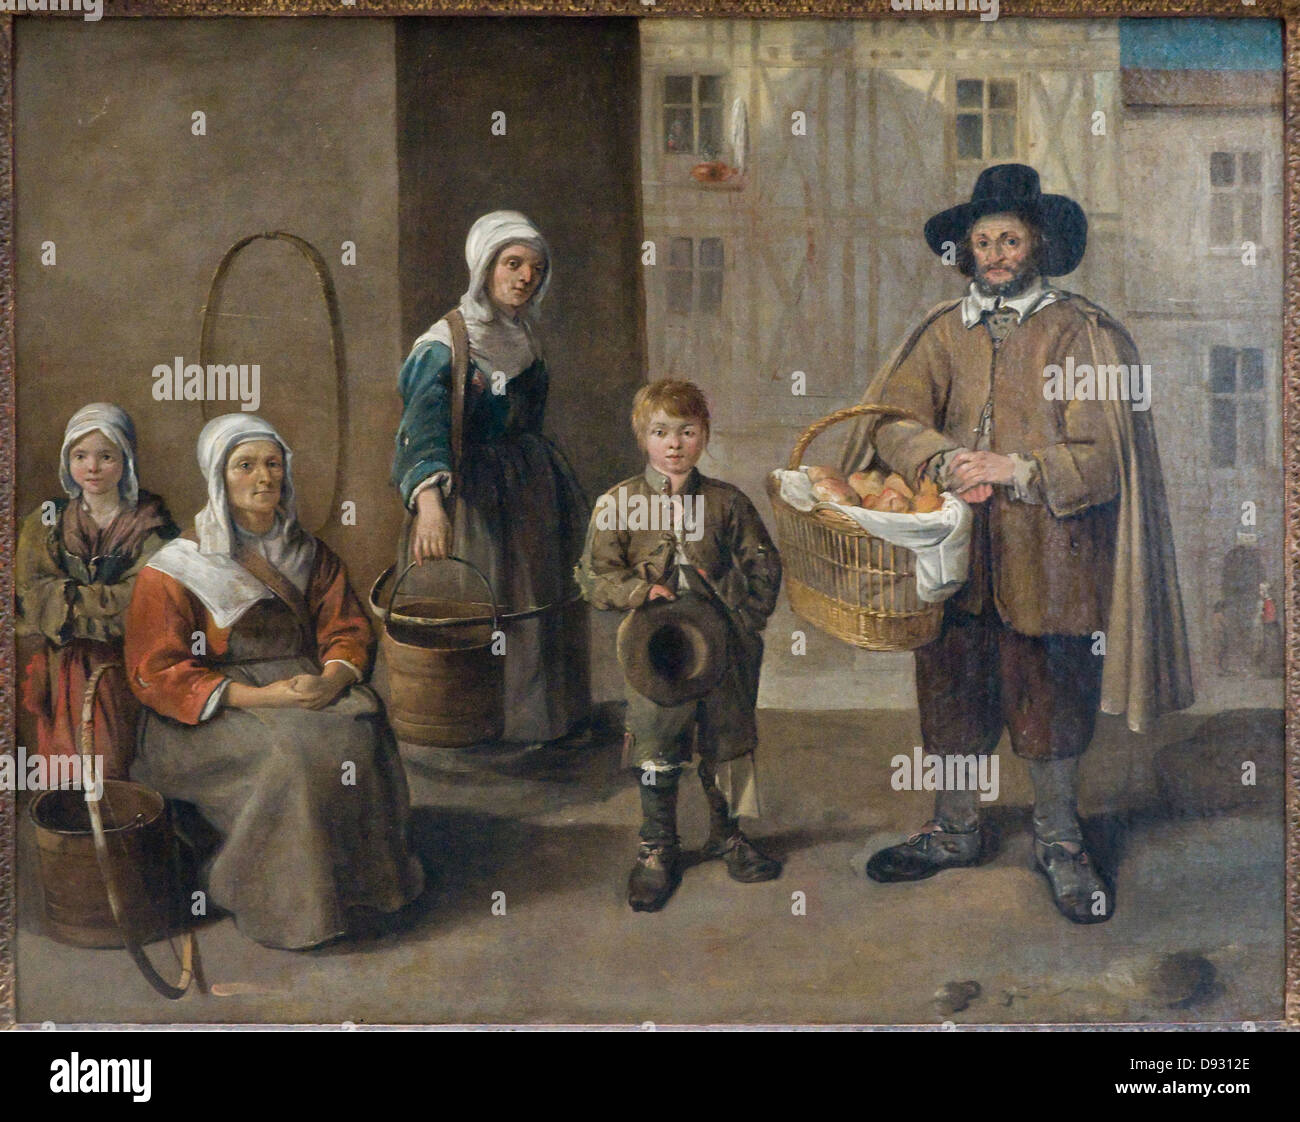 Jean Michelin Les Marchands de pains et les Porteuses d'eau - The Merchants of bread and water carriers 1650 - Stock Image